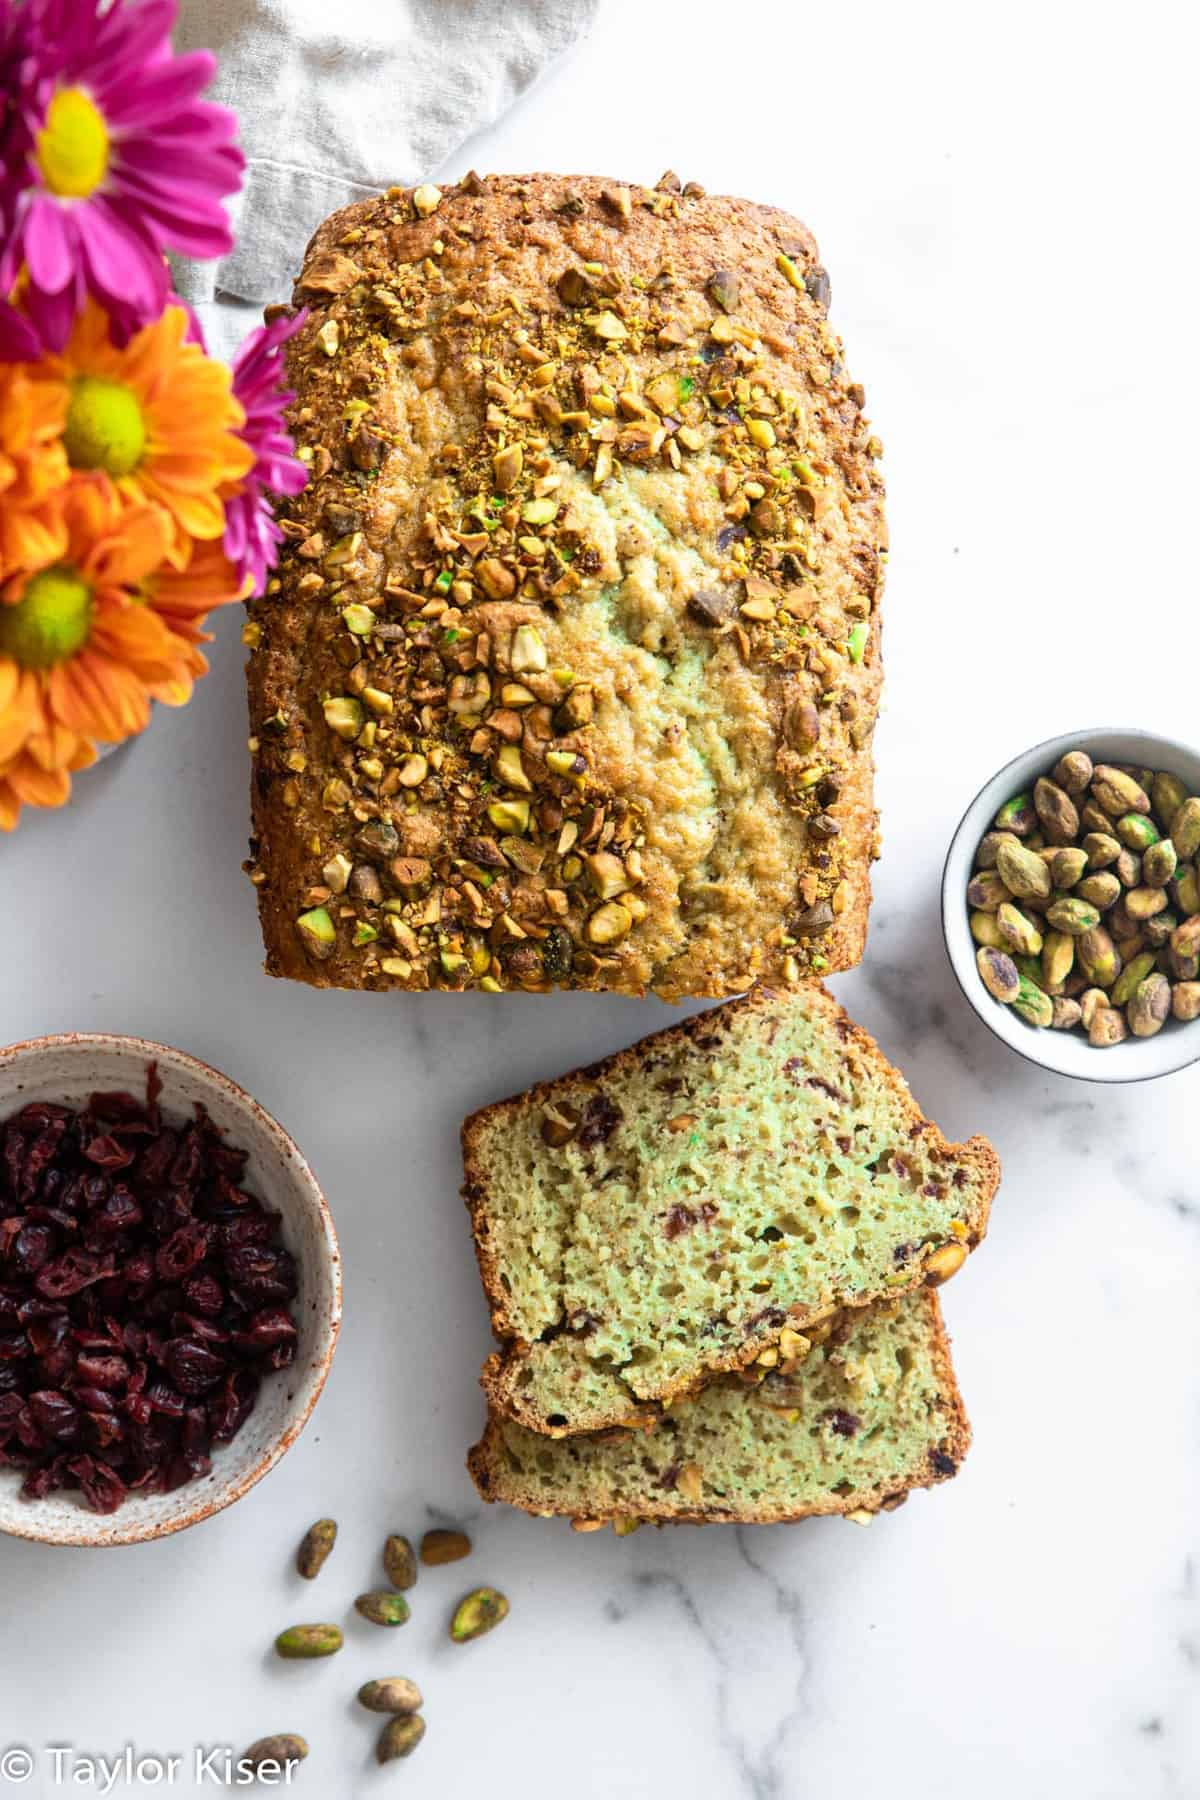 pistachio bread sliced on a table with flowers